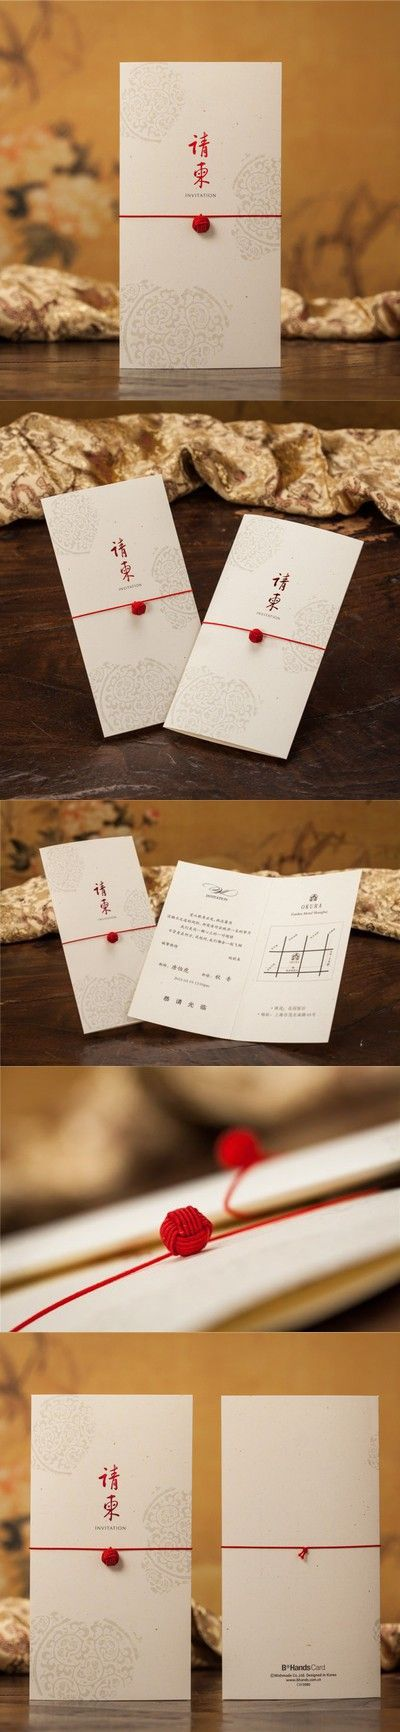 chinese wedding invitation card in malaysia%0A w    Chinese wedding invitation creative personalized custom wedding or  other invitations   pcs